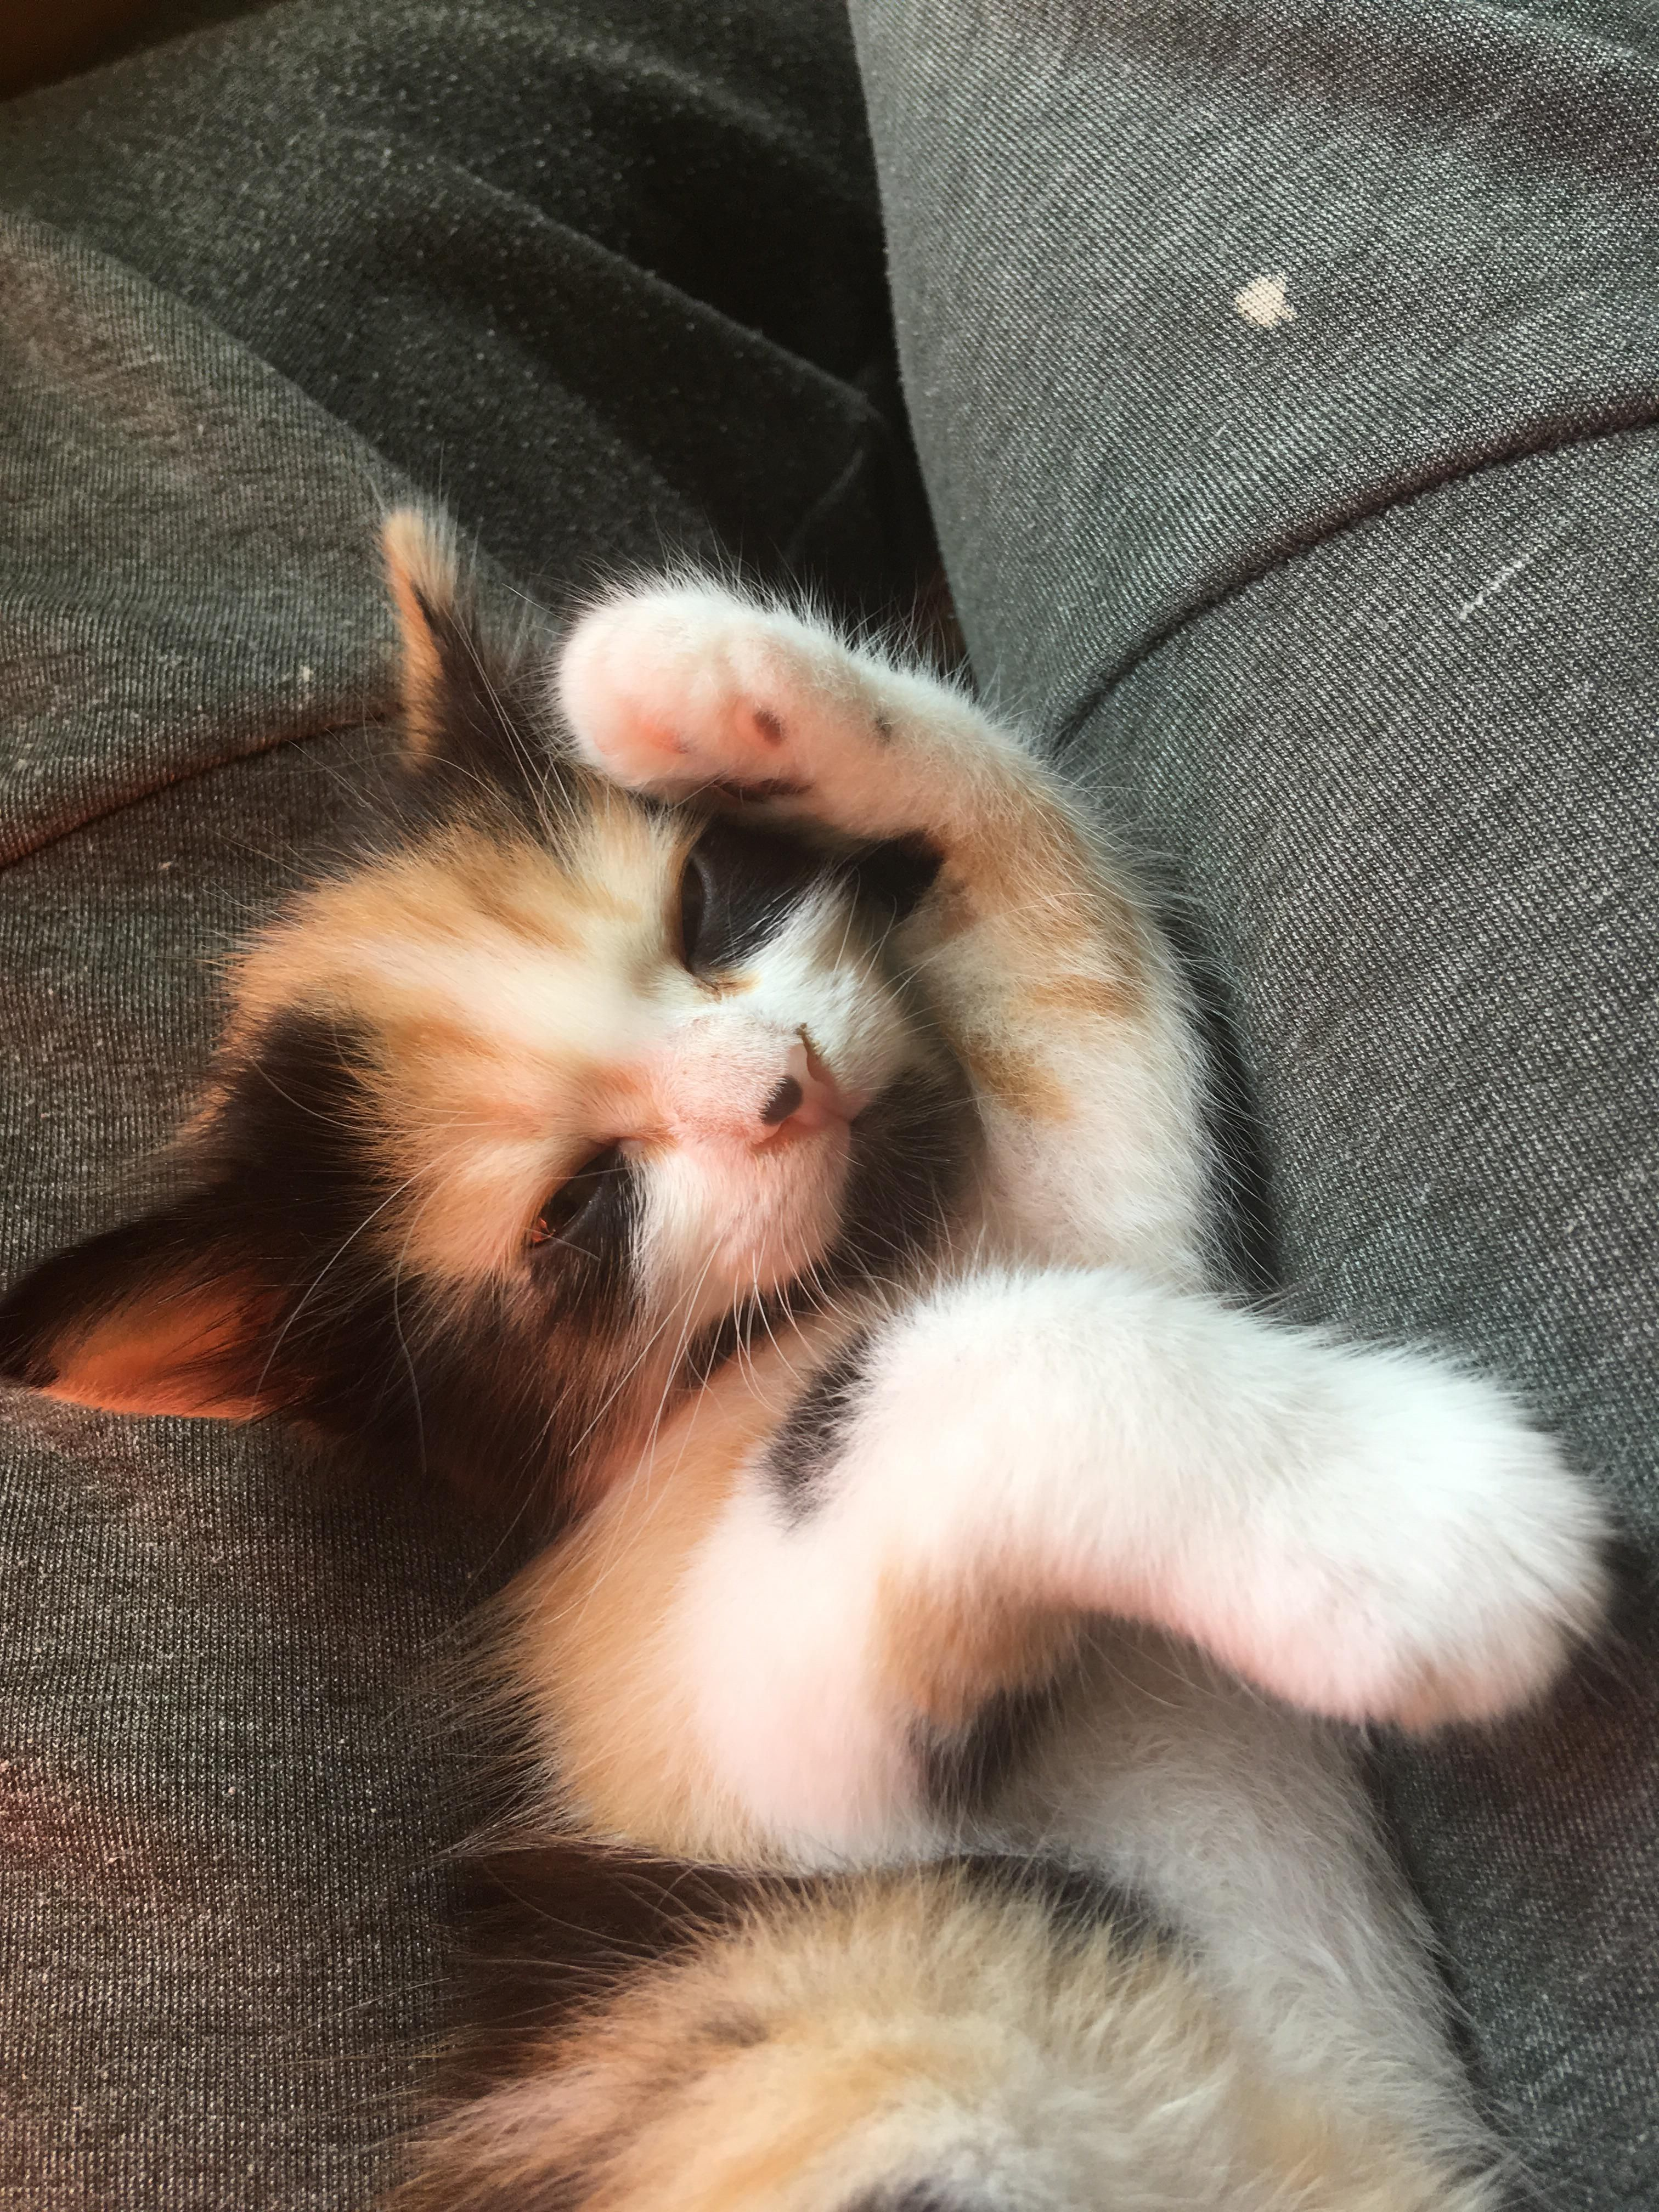 Just Got Her This Week And I Would Do Anything To Protect Herhttps I Redd It Nzdo4vf7y6o31 Jpg Funny Cat Memes Cute Cats Cat Pics